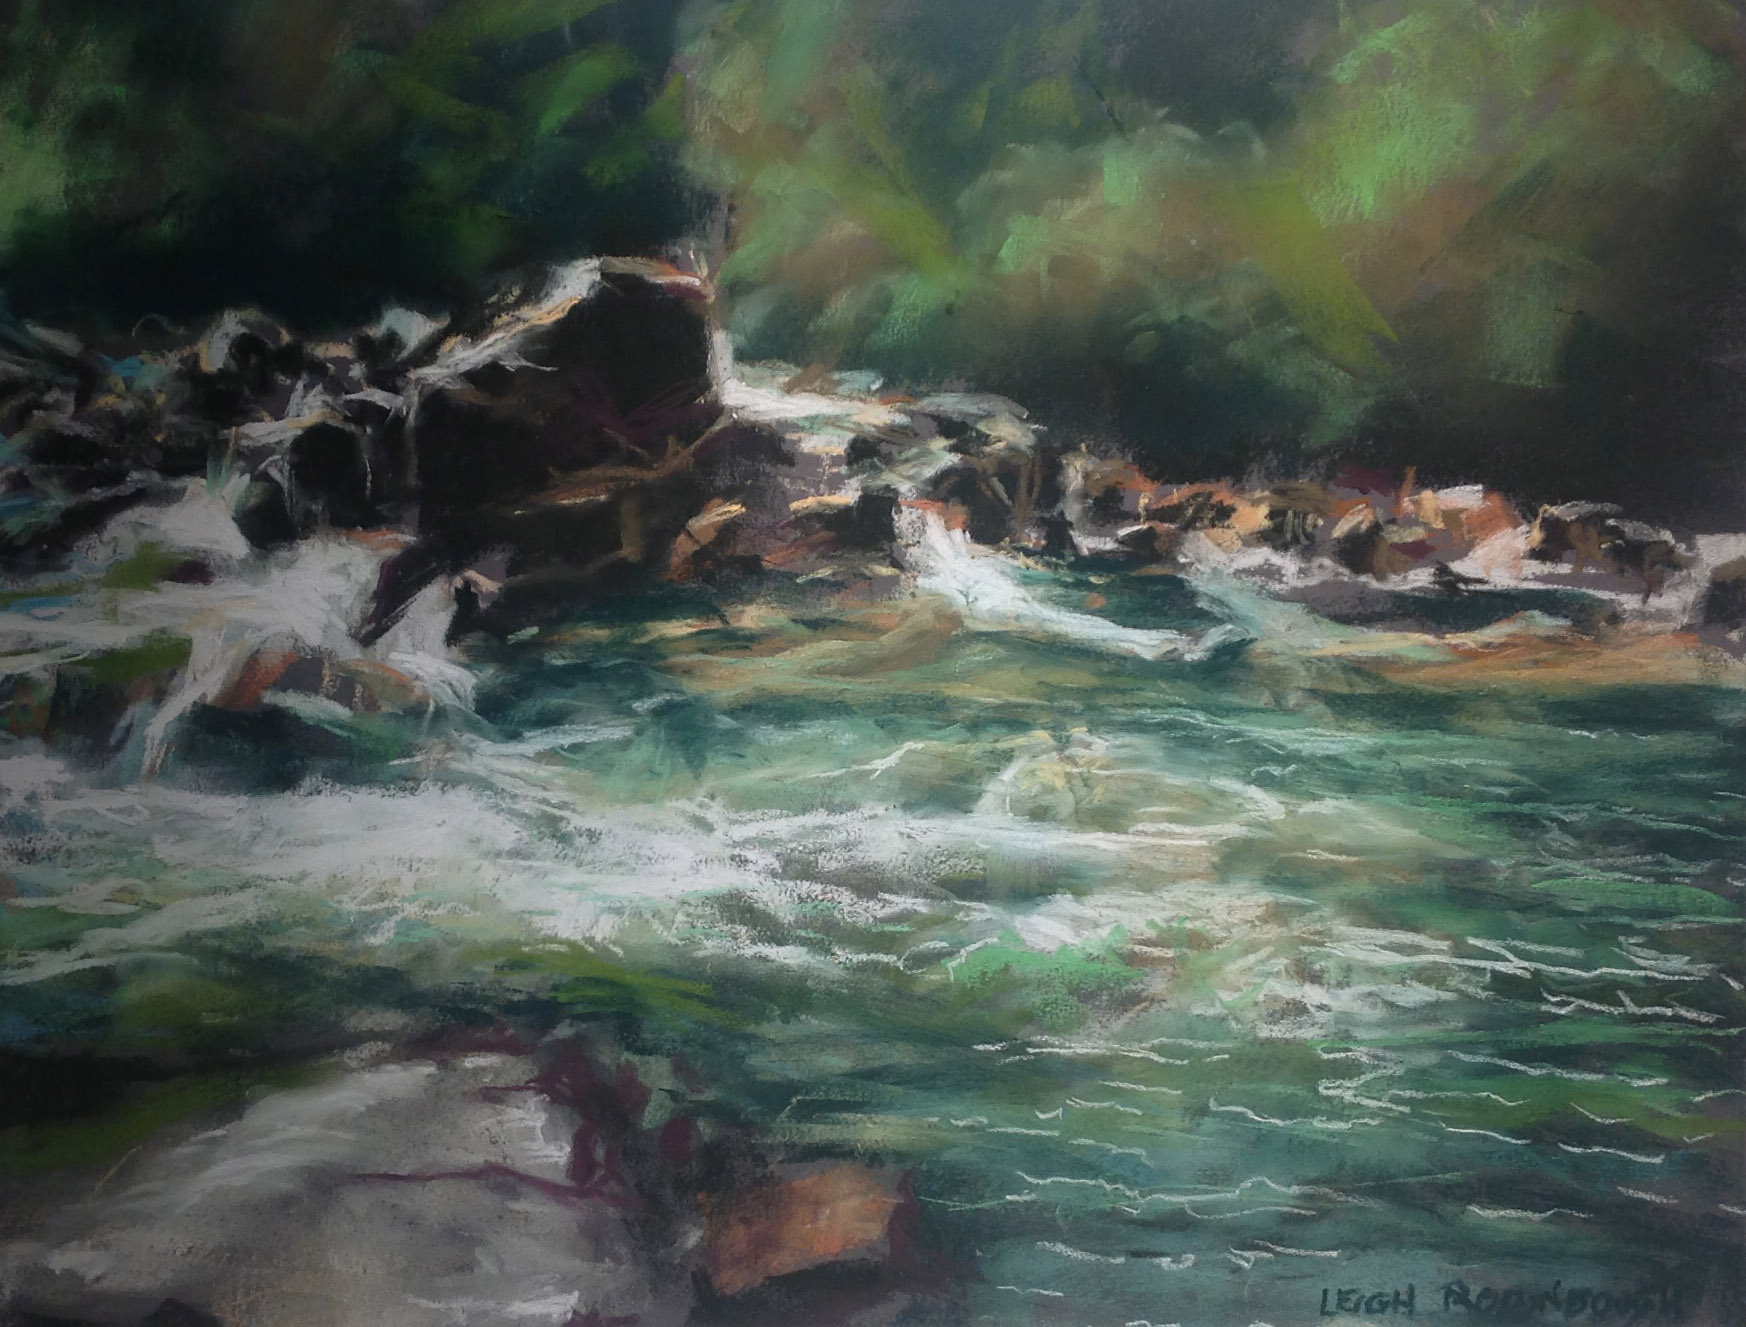 """Mayo River Rapids"" by Leigh Rodenbough"